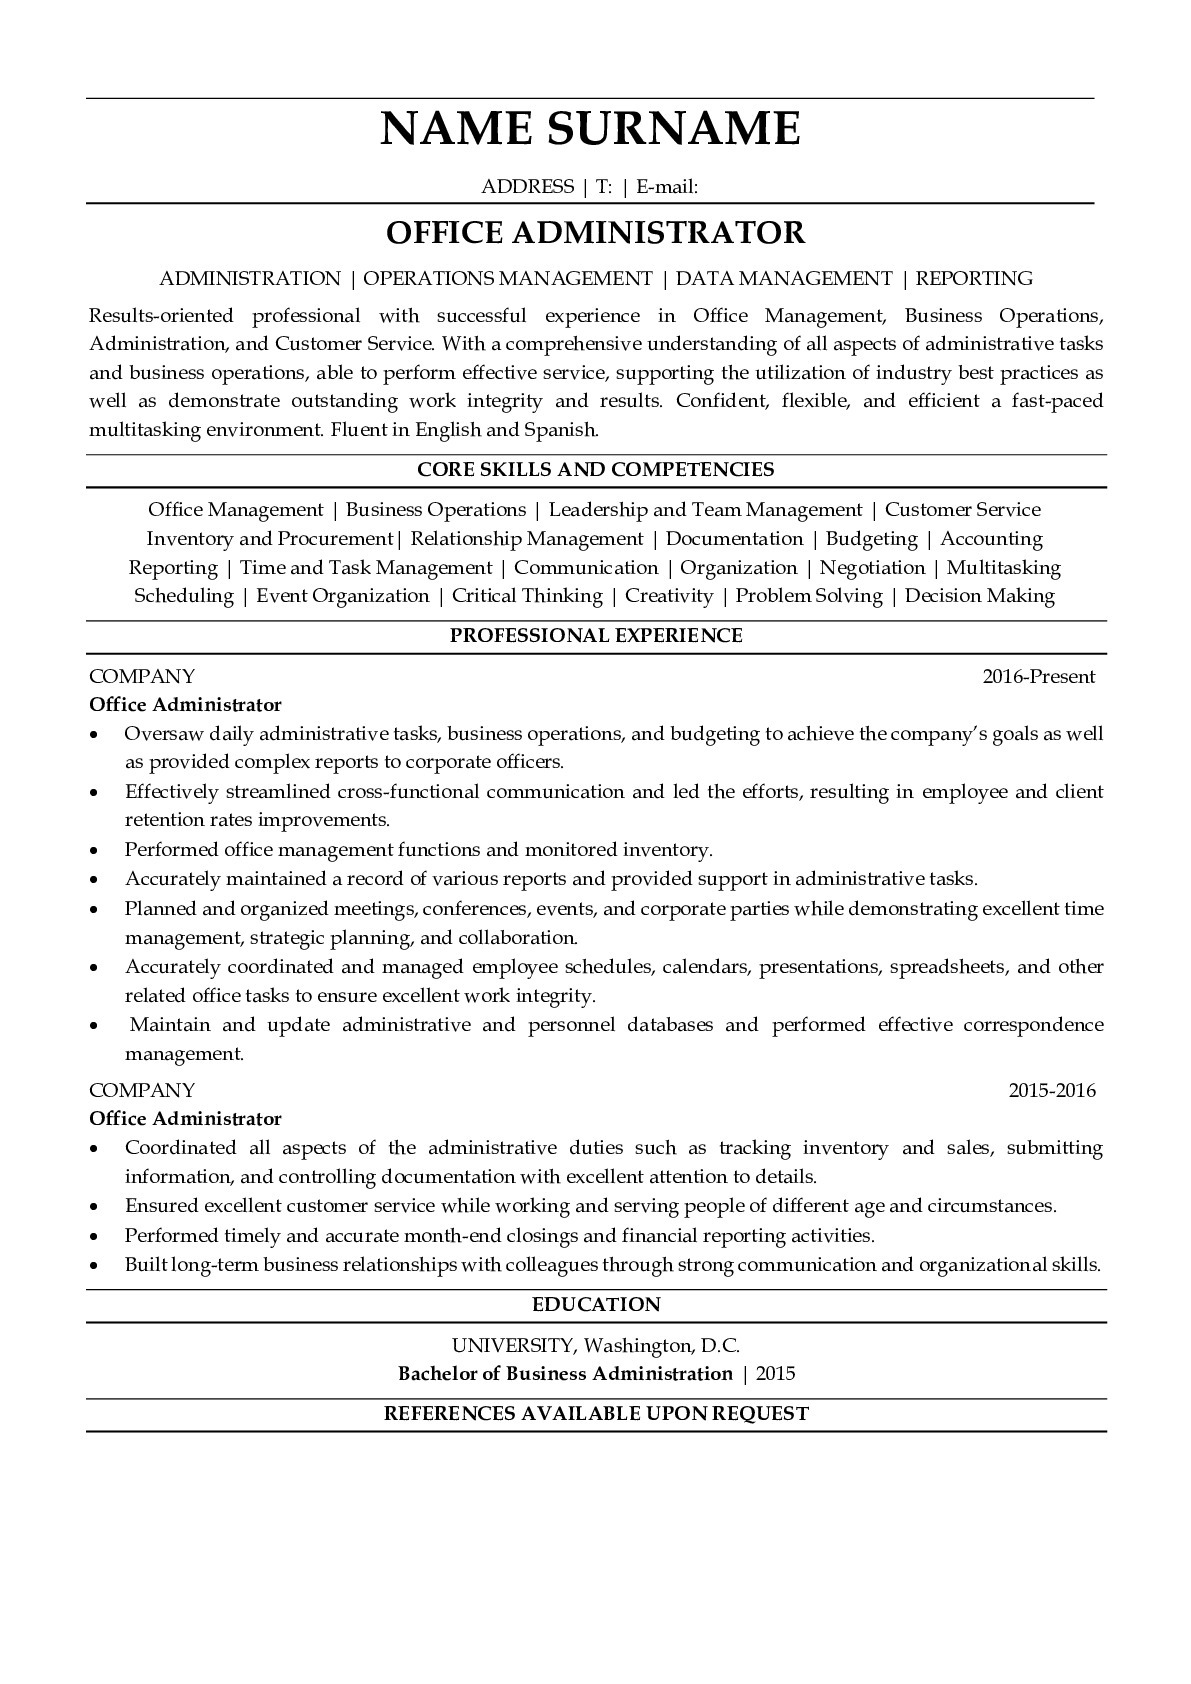 Resume for Office Administrator